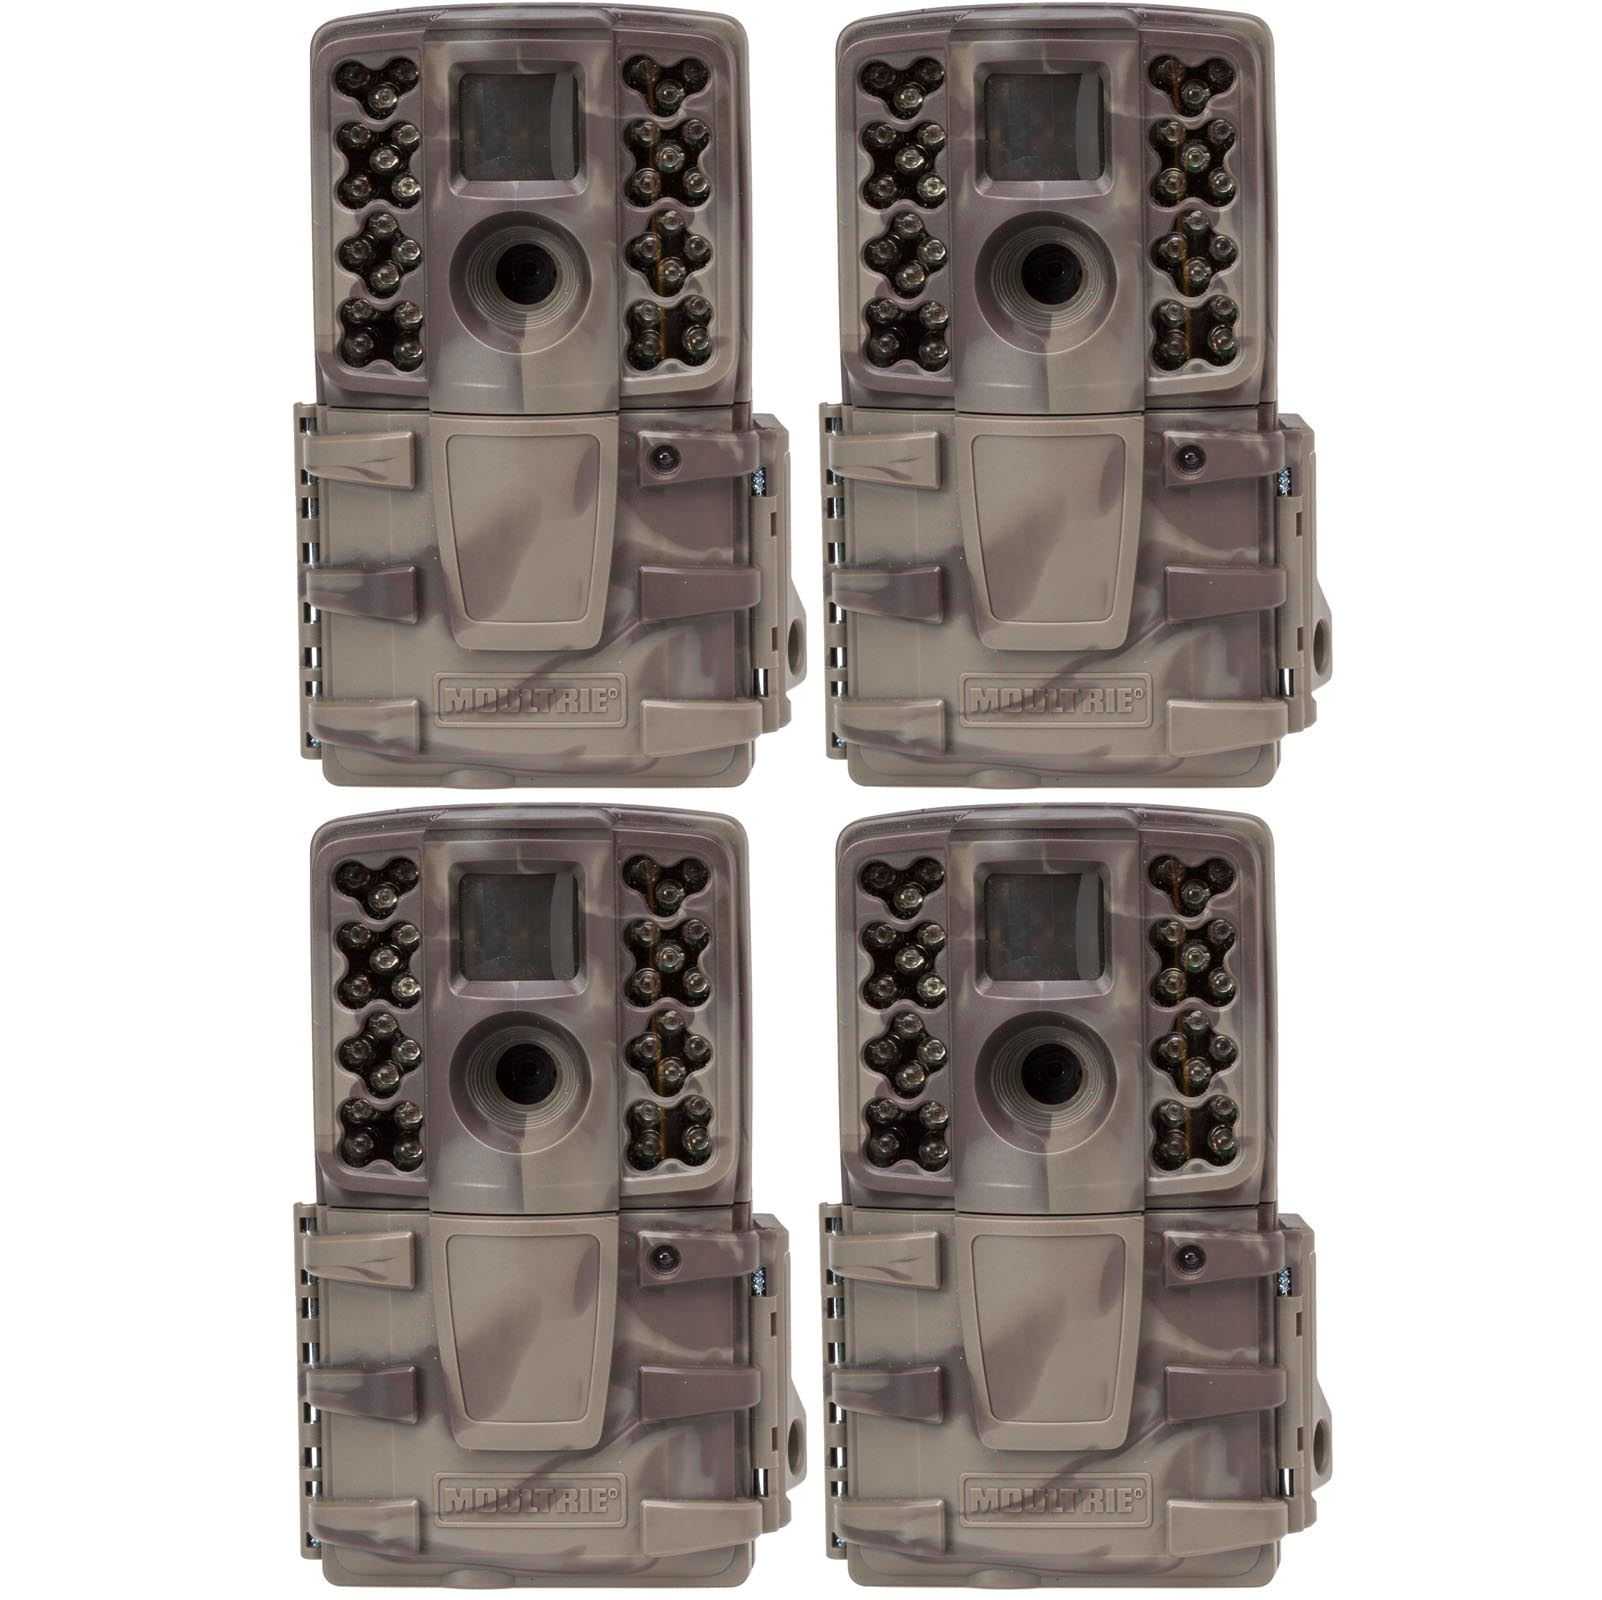 Click here to buy (4) Moultrie No Glow Invisible 12 MP Mini A20i Infrared Game Cameras | A-20i by Moultrie.